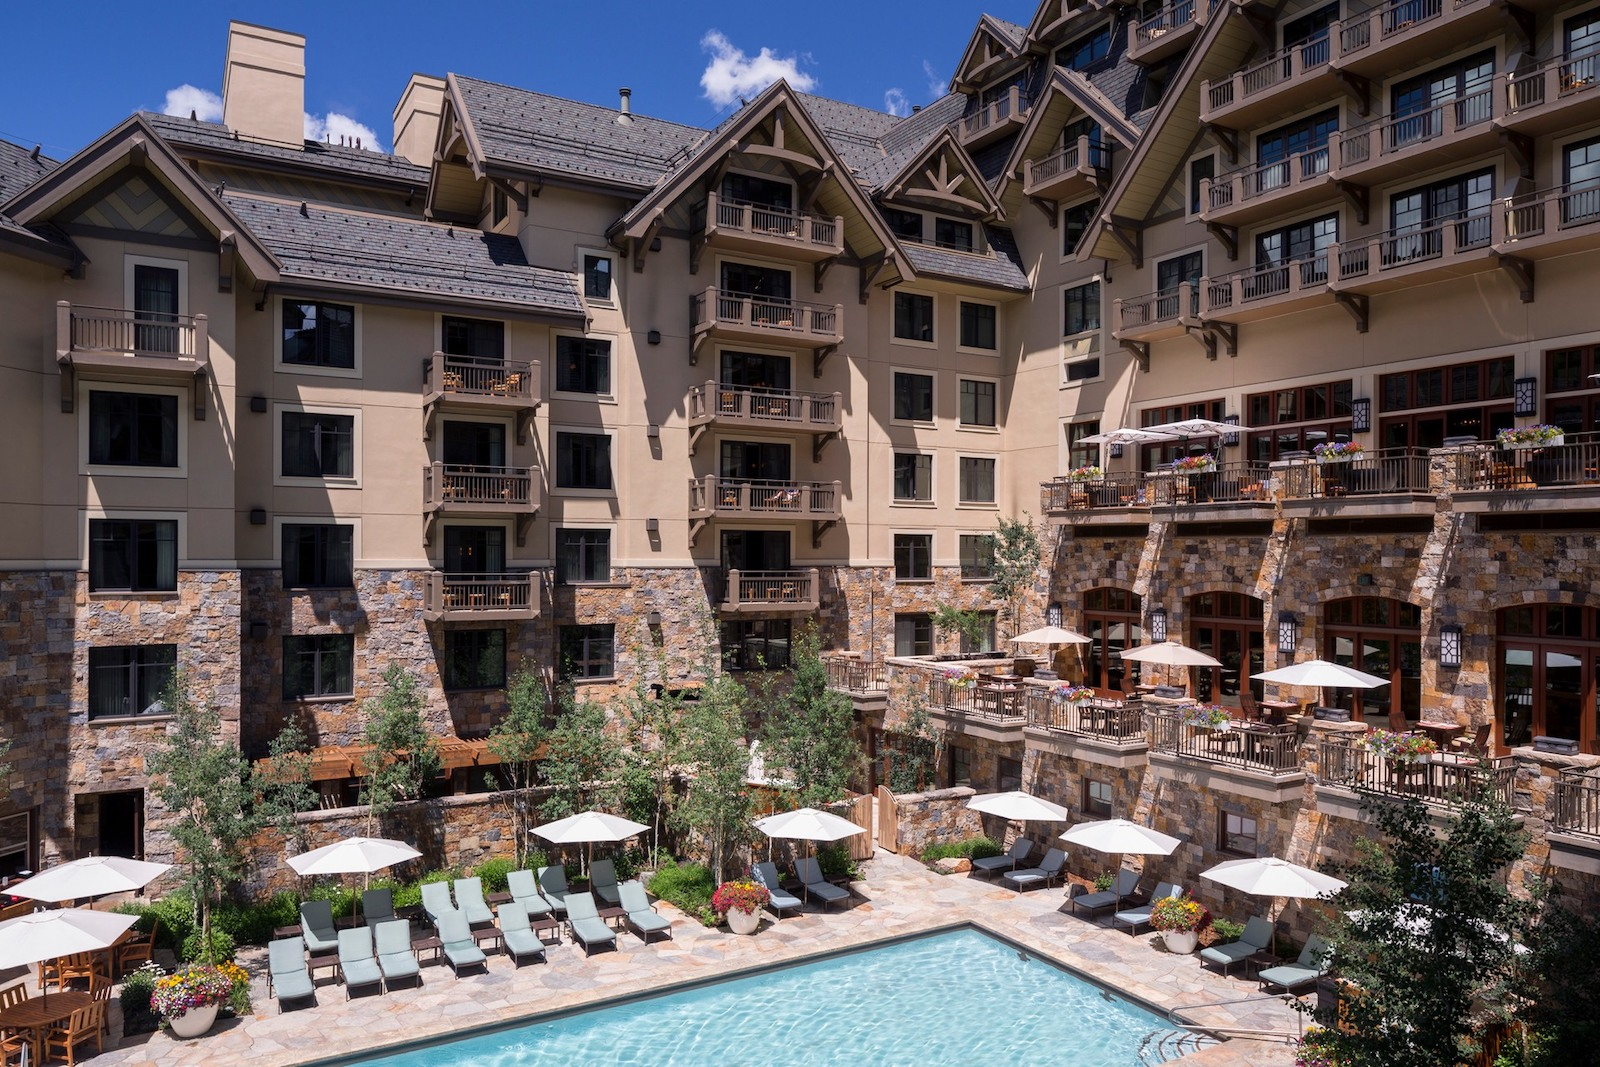 Image of the pool at the Four Seasons Resort Vail in Colorado